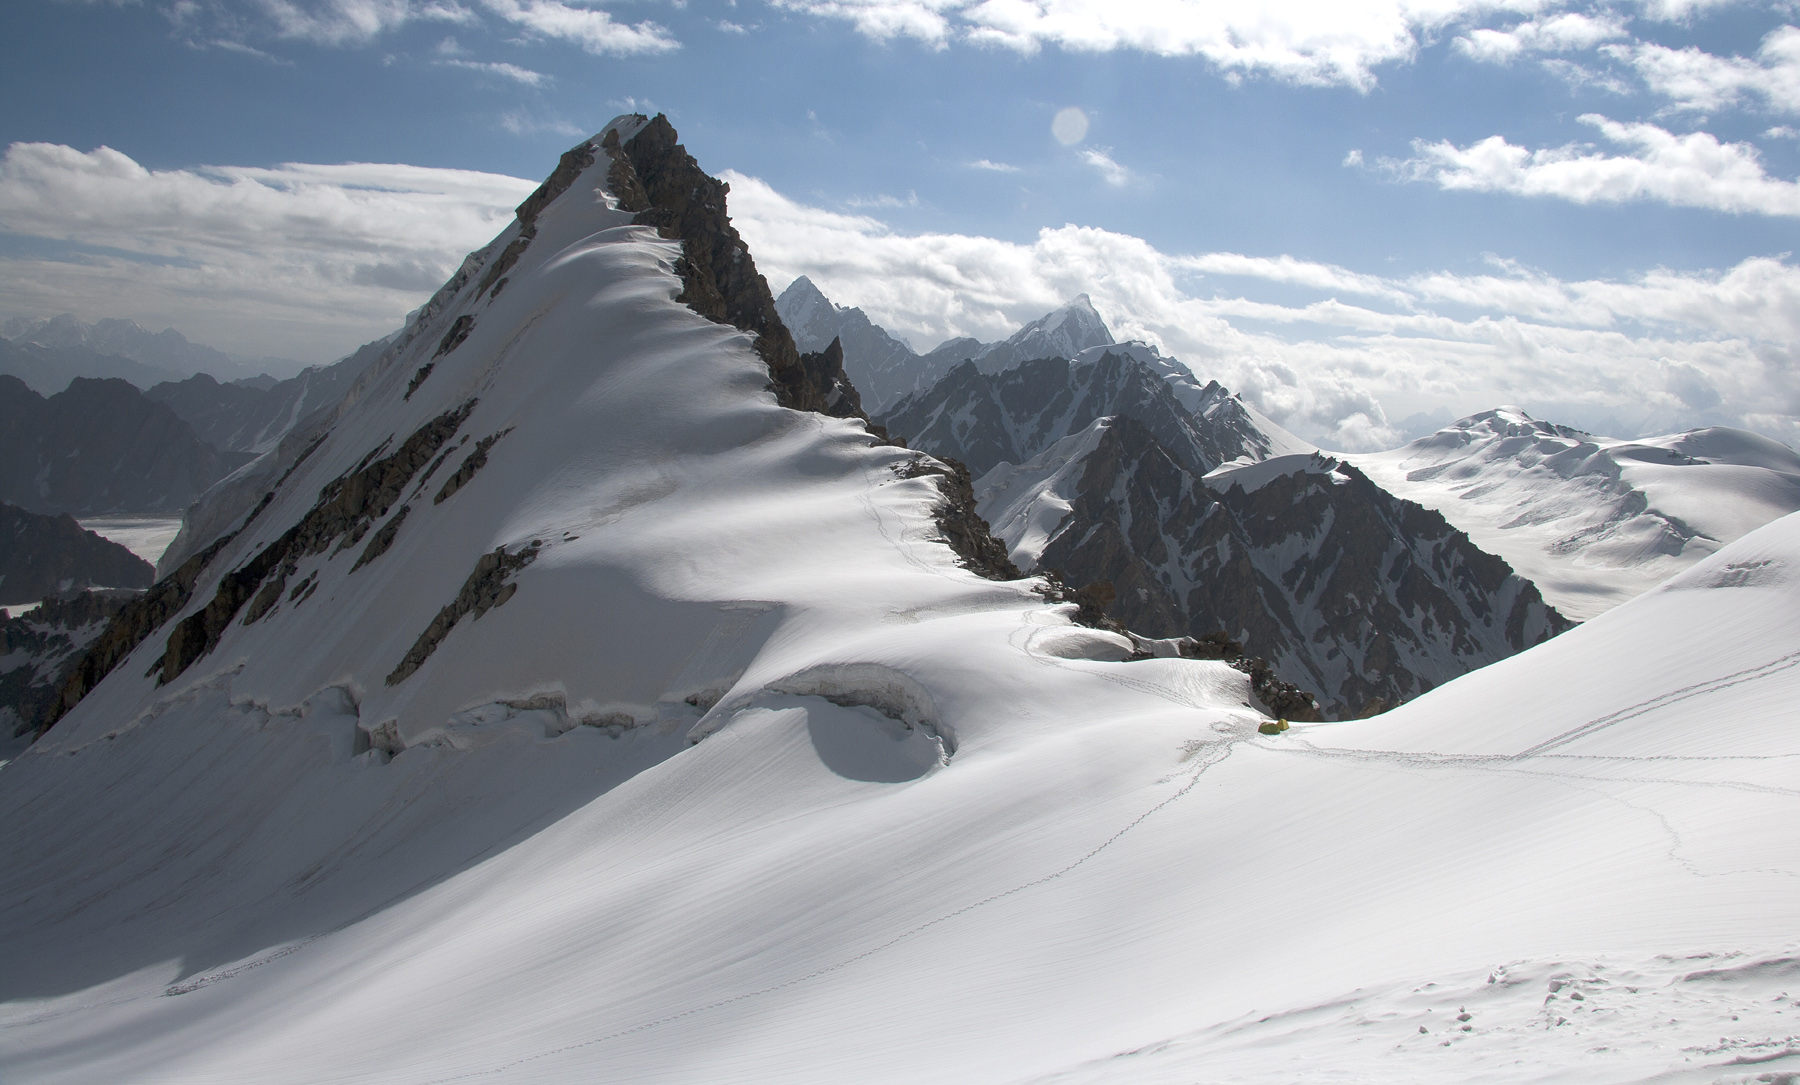 Koh-e-Forot Zorman. From col camp on the frontier ridge, the west ridge was followed to the summit. Photograph taken from low on east face of unnamed peak, attempted by Dutch.